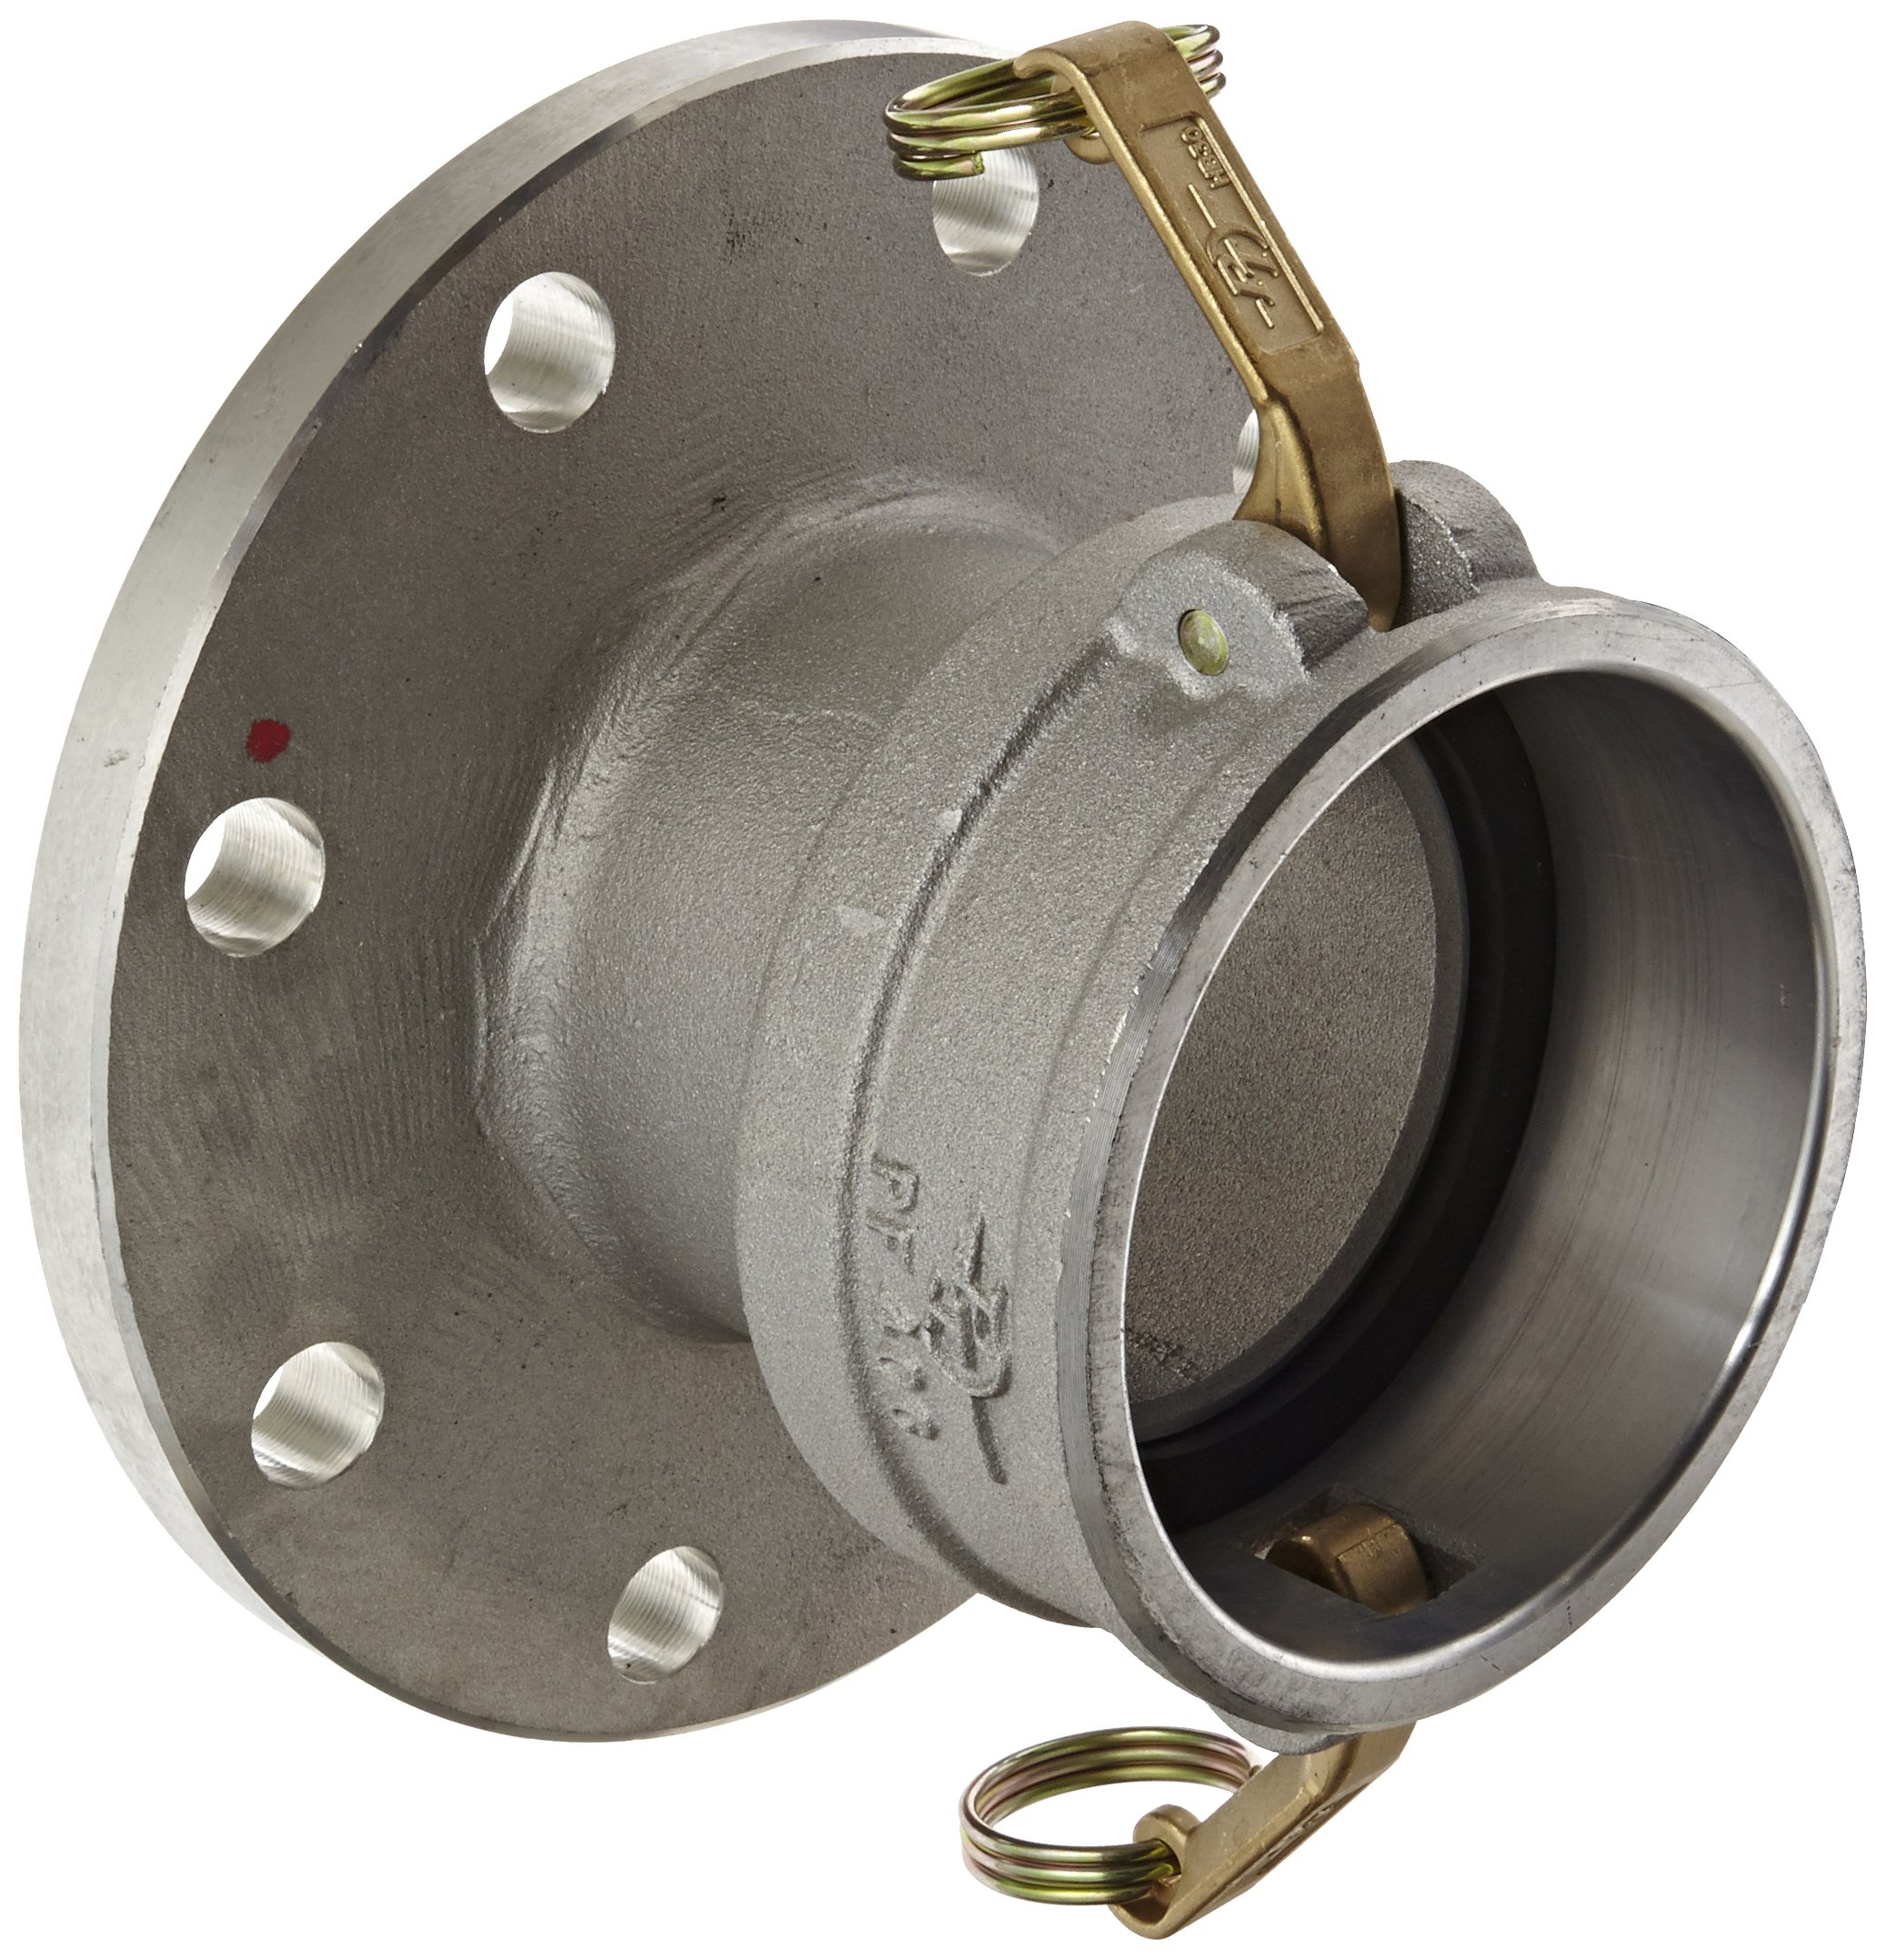 PT Coupling PFC Series PF40C Aluminum Cam and Groove Hose Fitting, Flange, Brass (HB) Cam Arms, 4'' Coupler x Pipe Flange